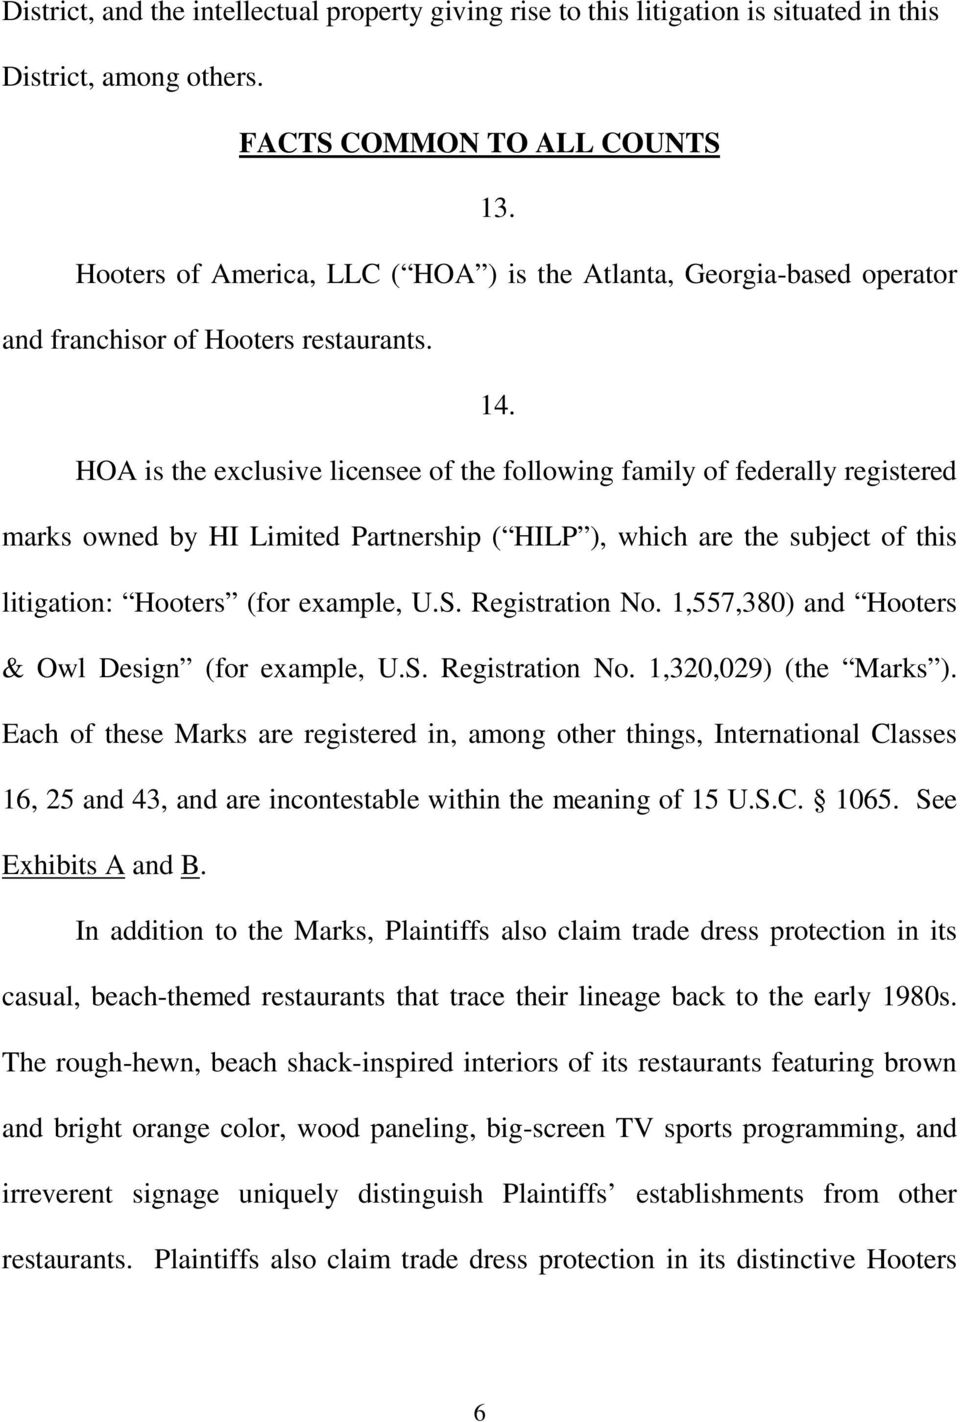 HOA is the exclusive licensee of the following family of federally registered marks owned by HI Limited Partnership ( HILP ), which are the subject of this litigation: Hooters (for example, U.S.